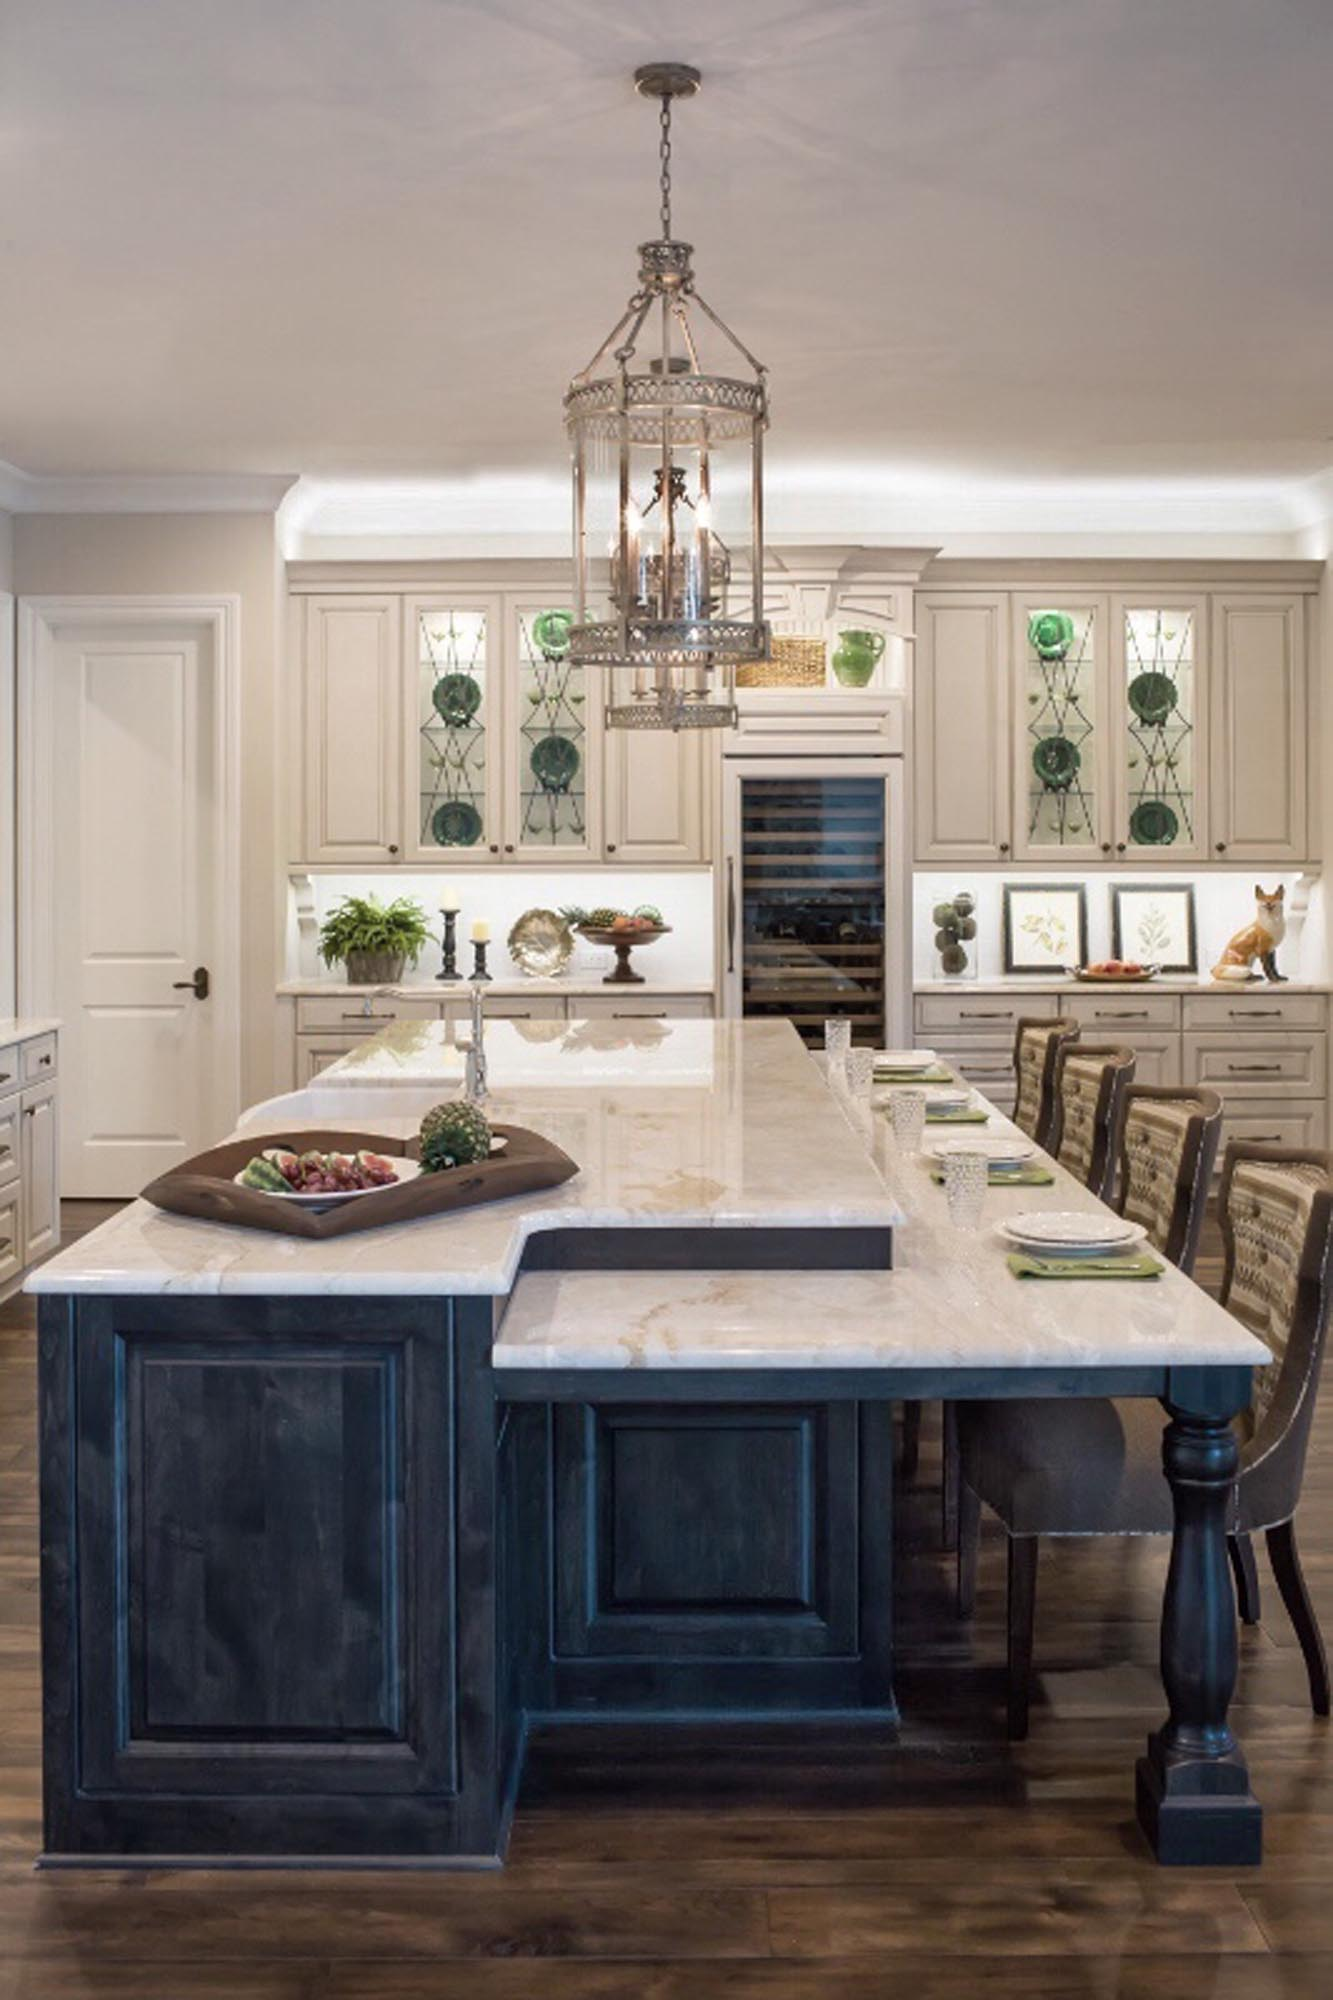 Traditional kitchen new construction home cream cabinets with black island wine refrigerator counter chairs